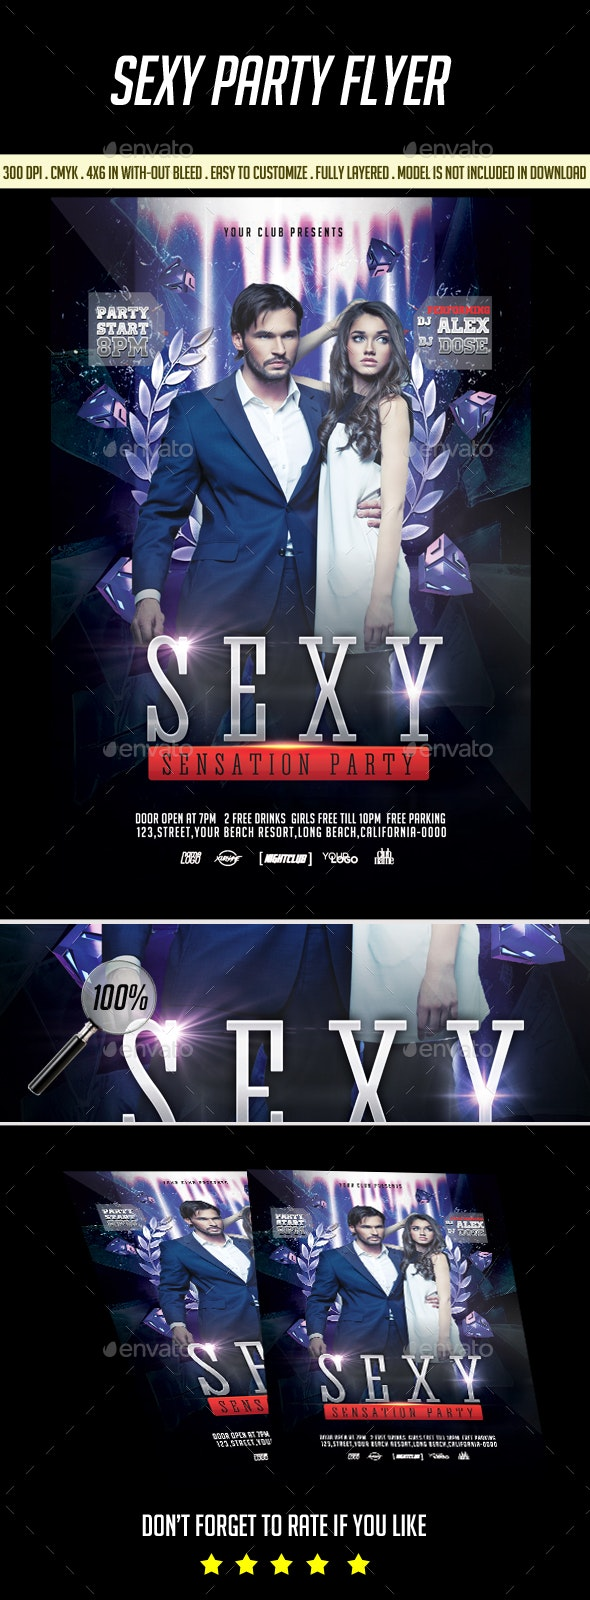 Sexy Sensetion Flyer - Clubs & Parties Events